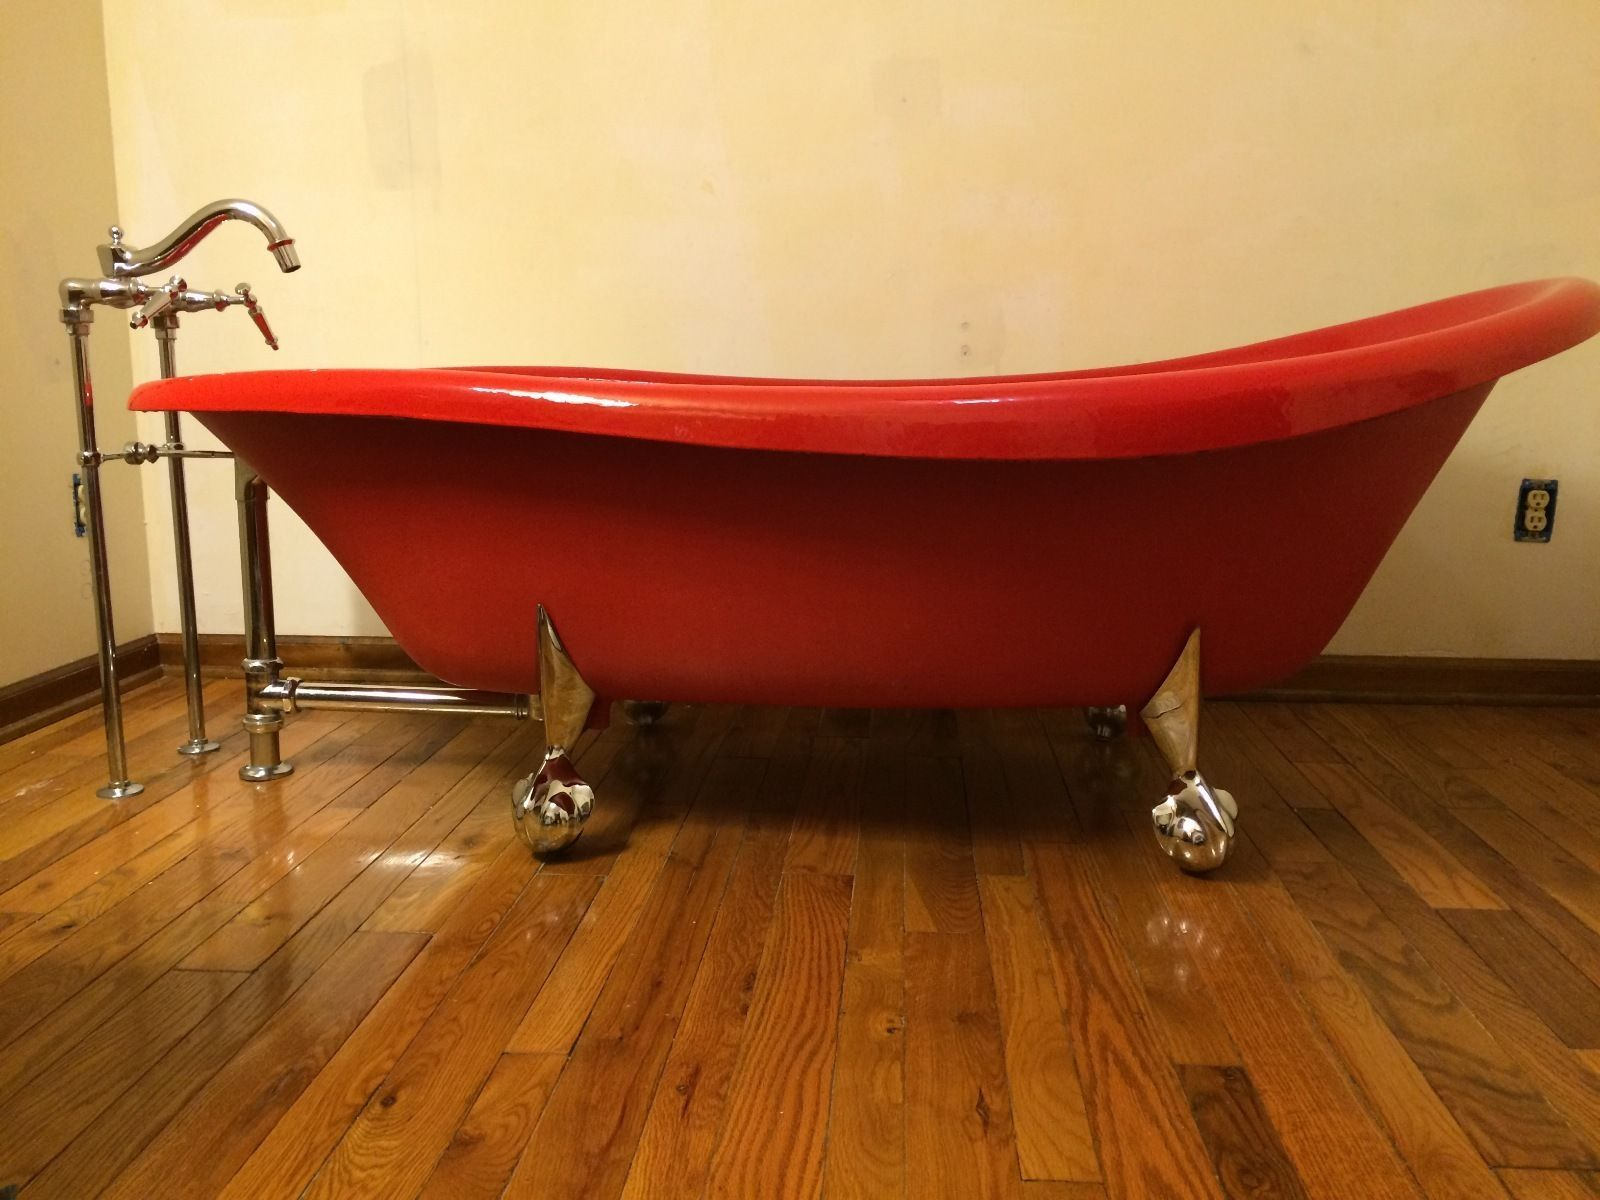 Red Kohler Birthday Bath Claw Foot Tub